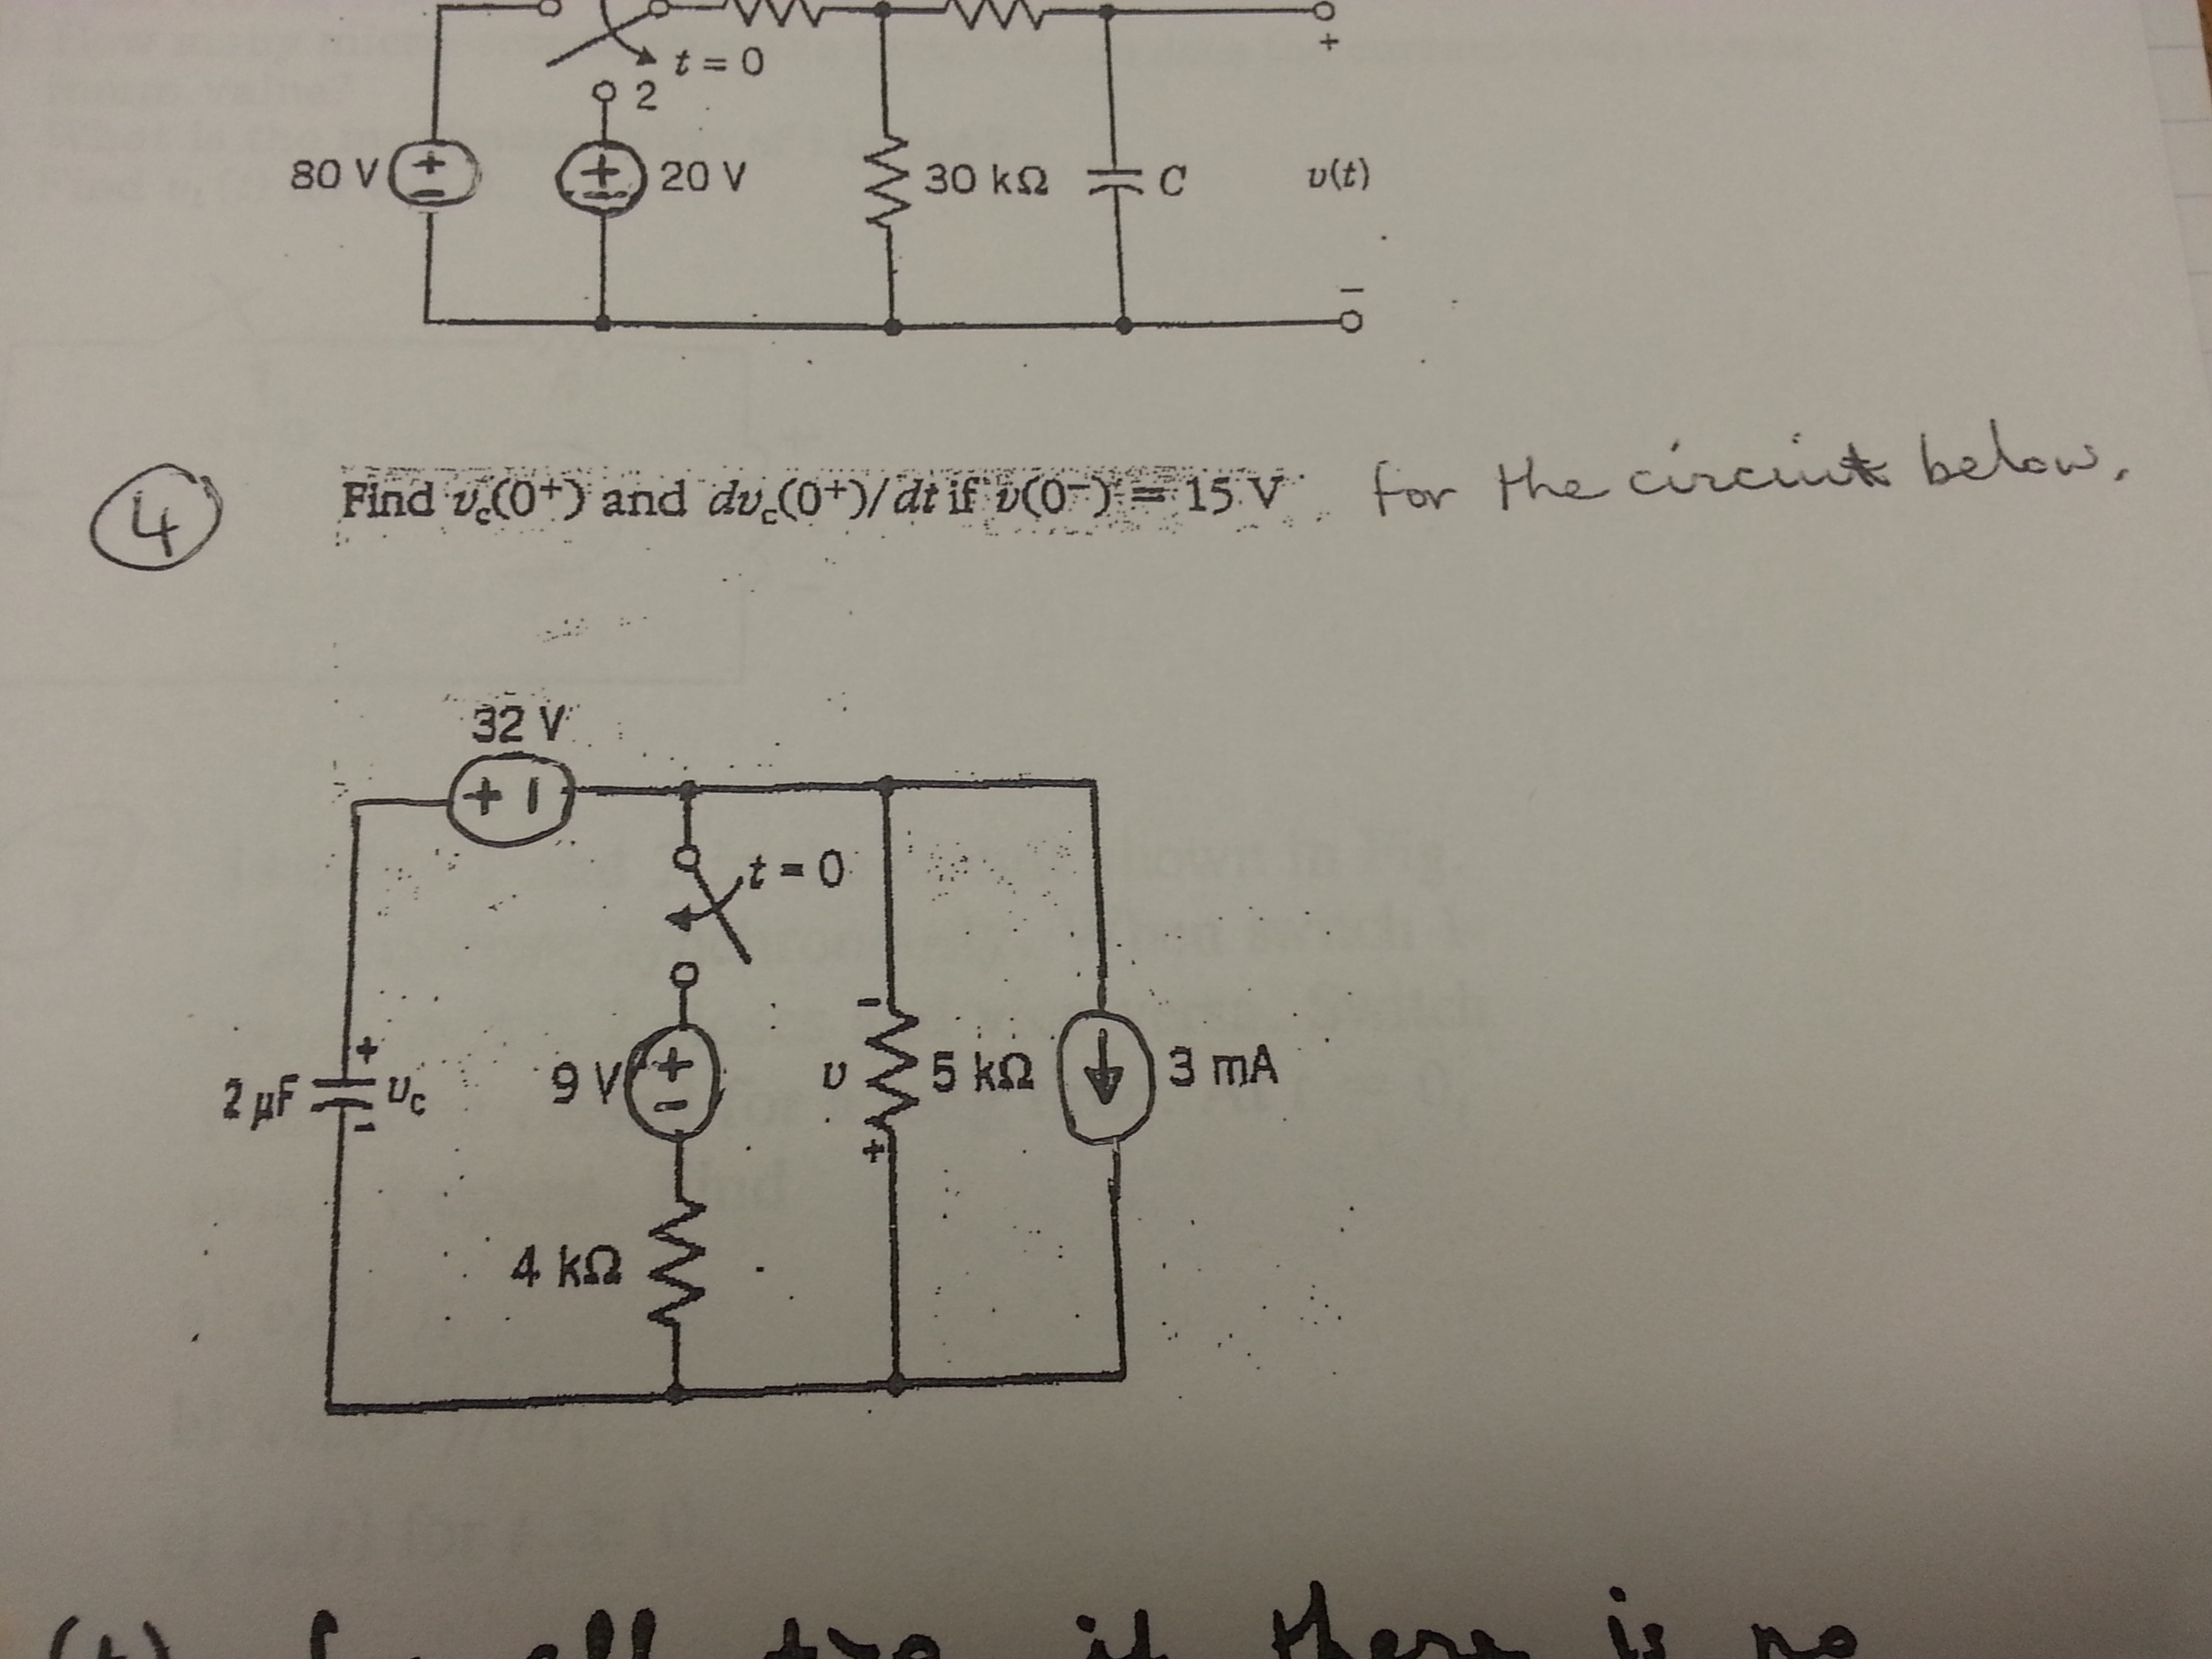 Find vc(o+) and dvc(o+)/dt if v(0-)=15v. For the